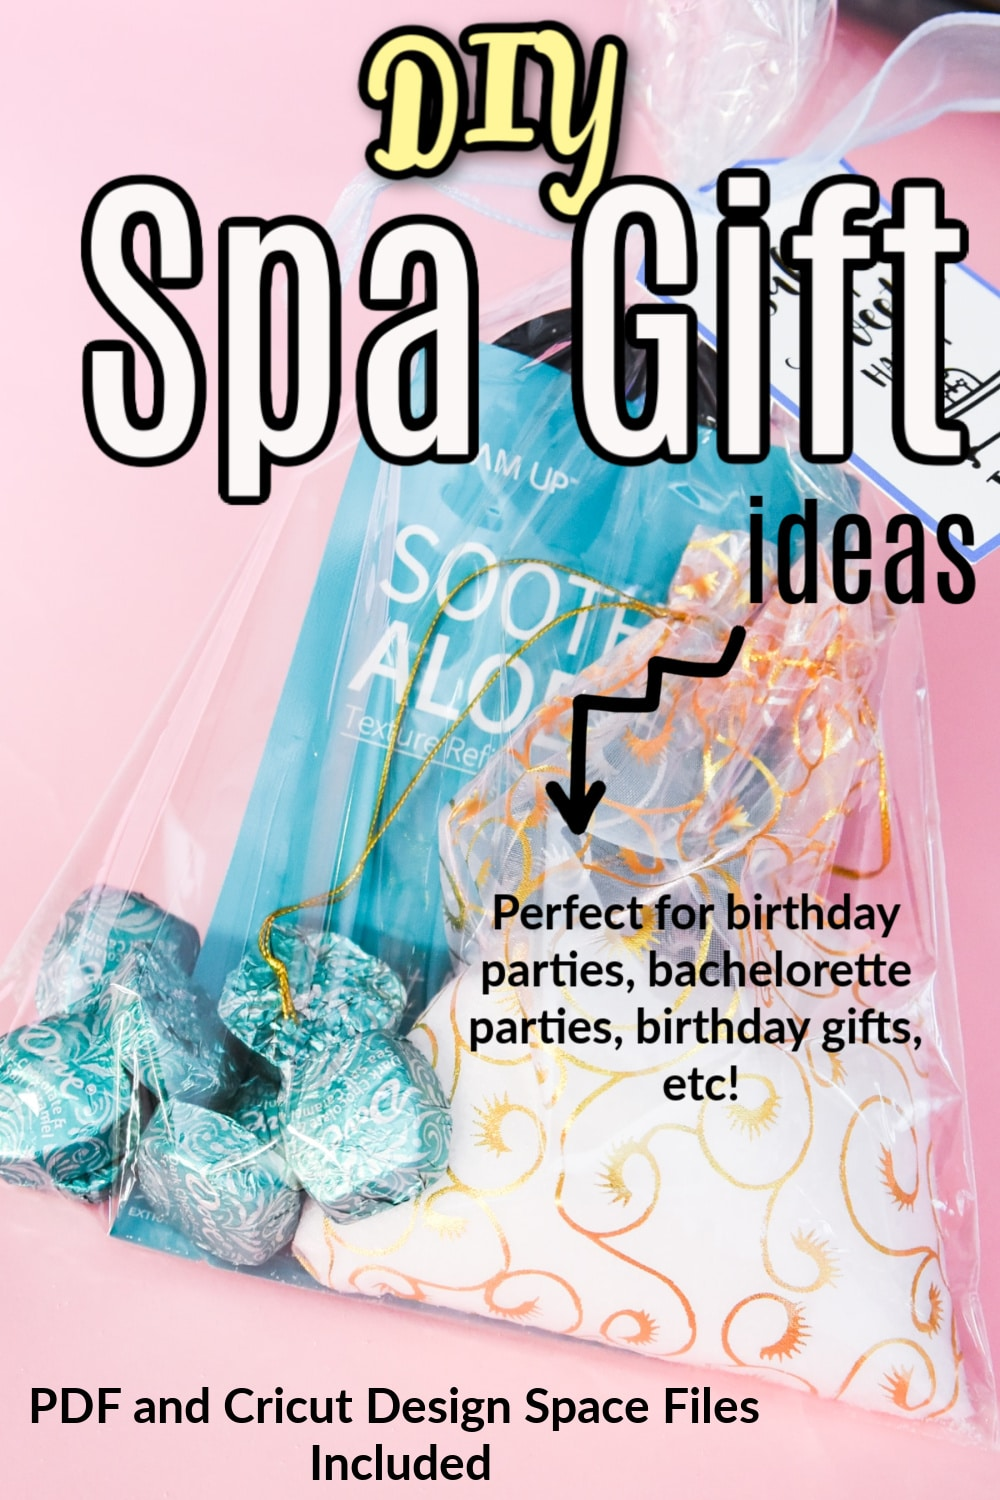 Spa Gift ideas - great for an easy birthday gift or as a party favor! via @clarkscondensed